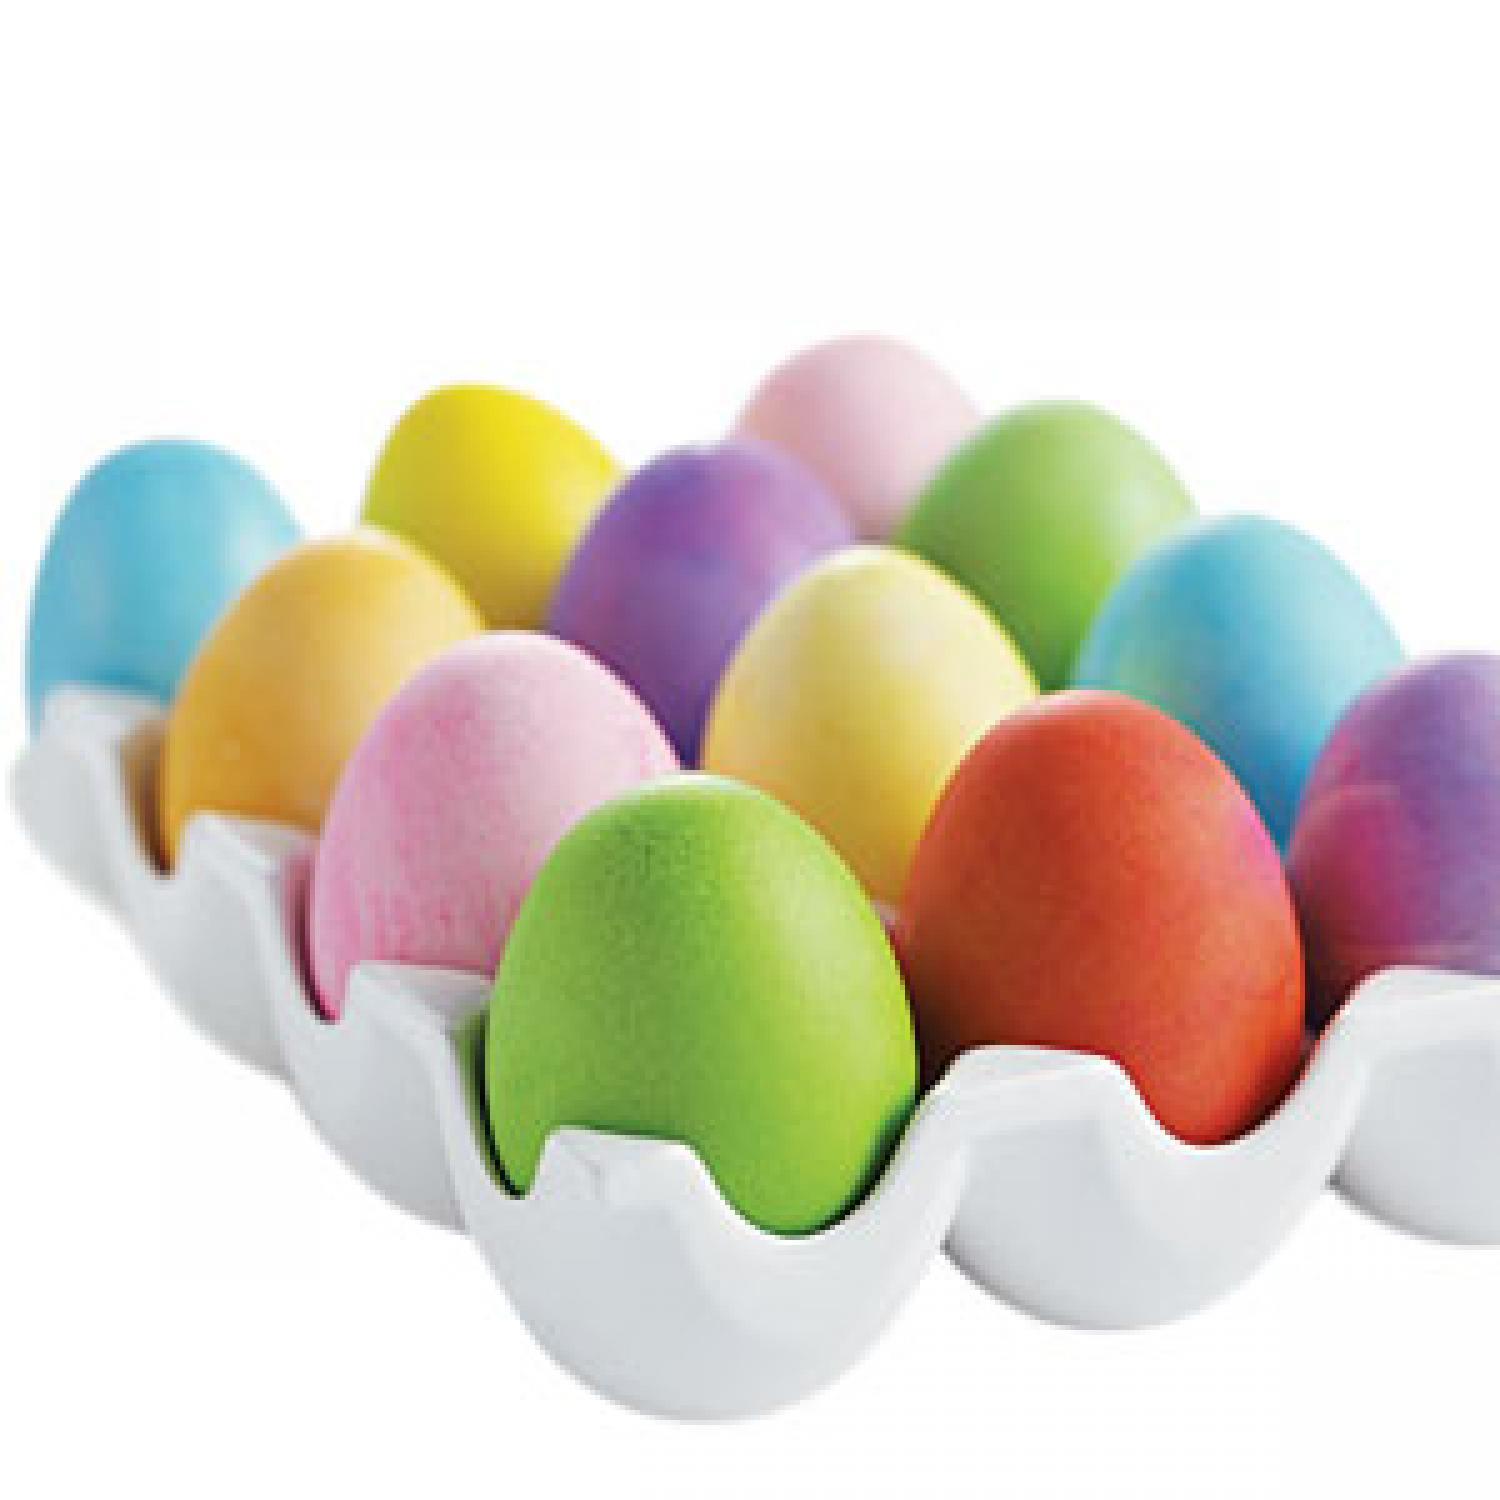 5 Tips for Coloring Easter Eggs | Parenting